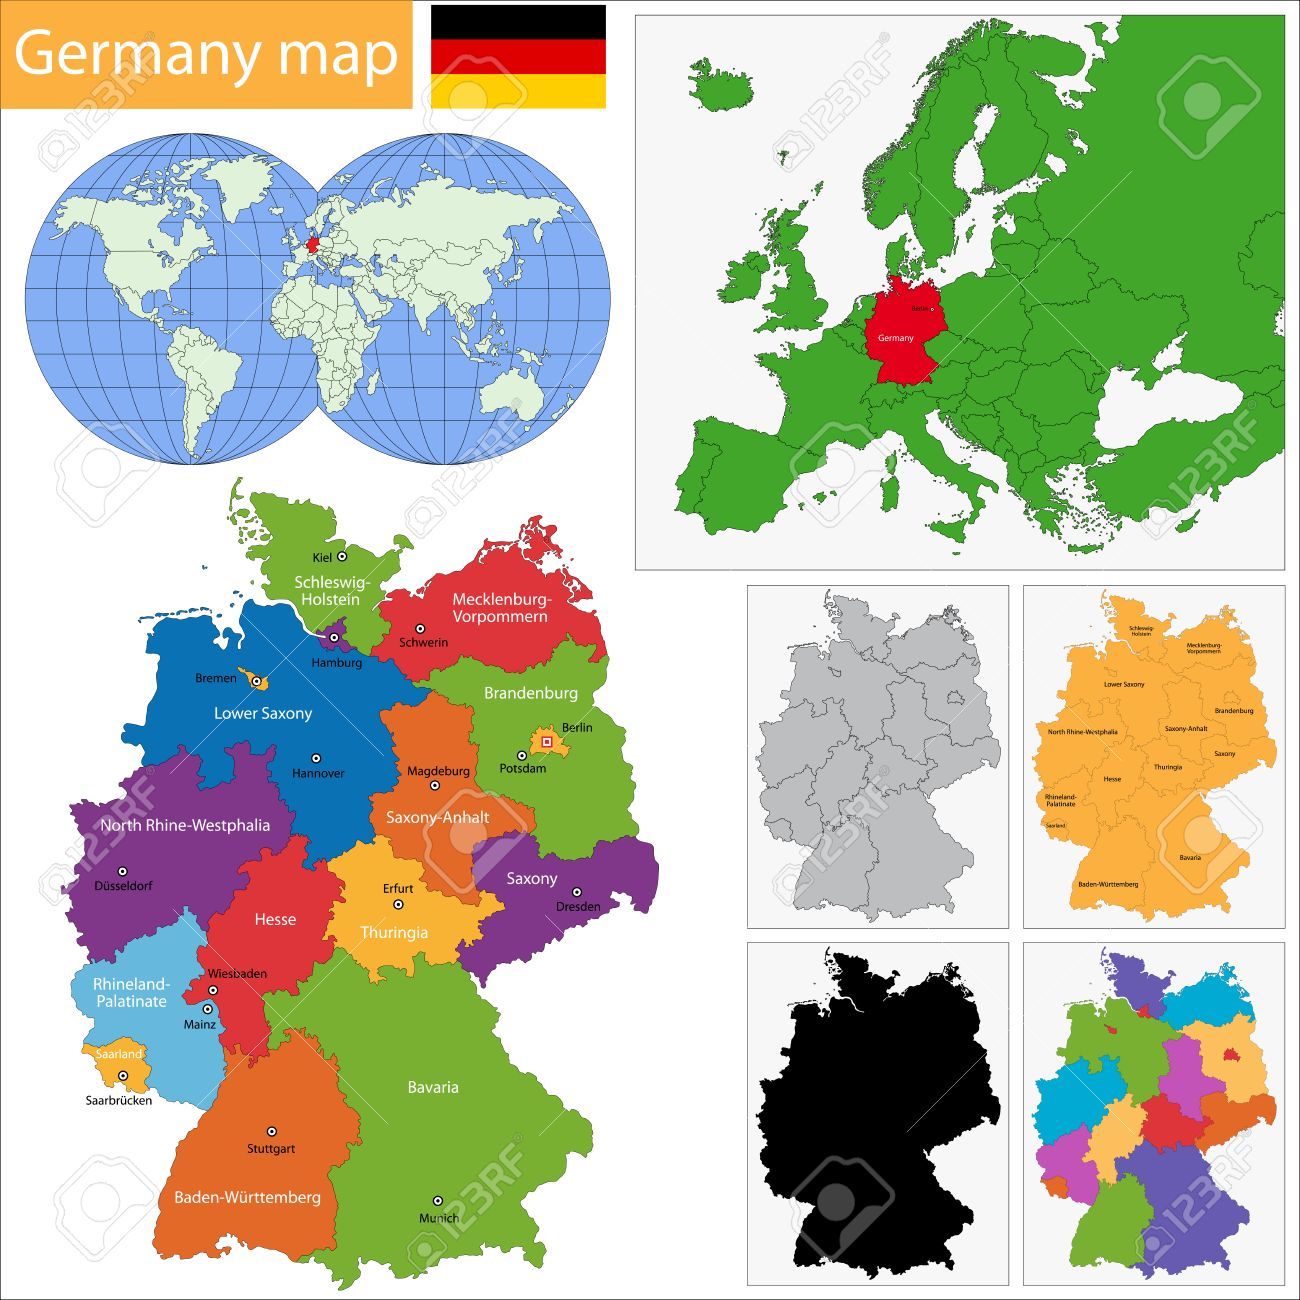 Germany Map With Regions And Main Cities Royalty Free Cliparts